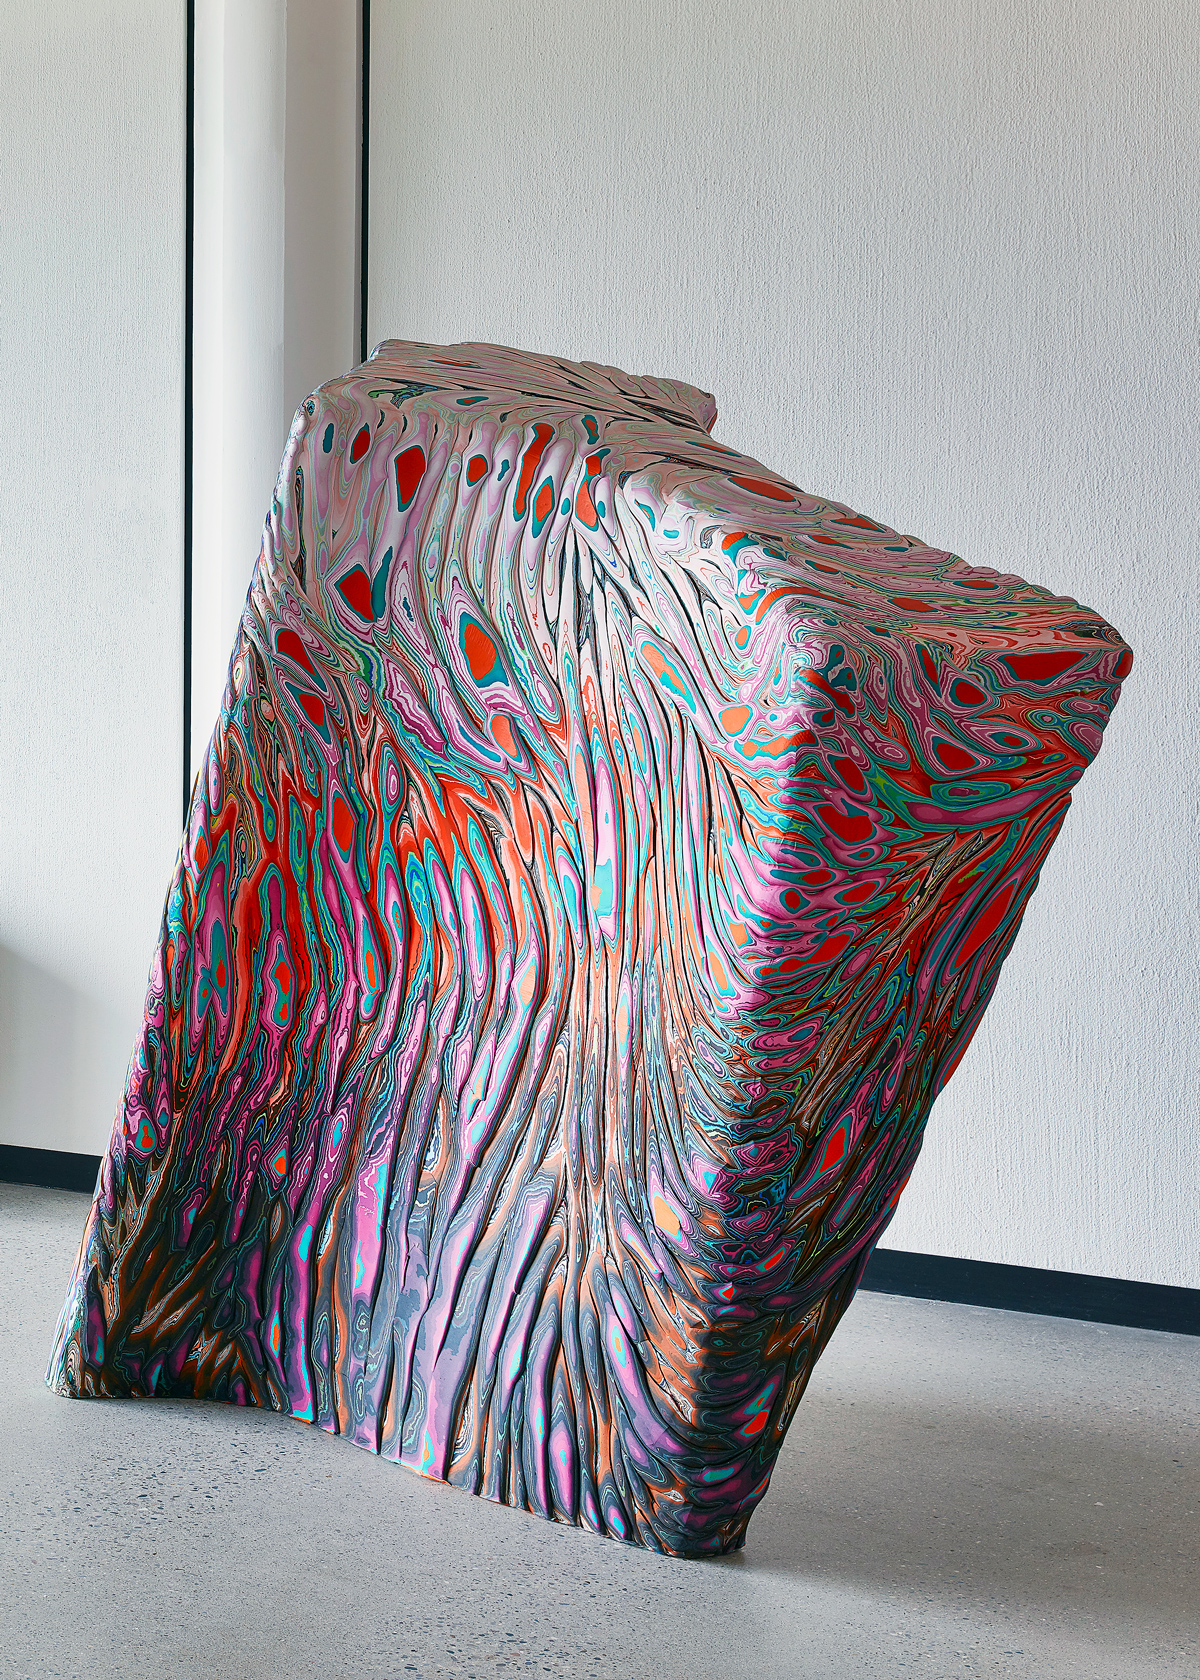 Holton Rower:   Cartilage Denial Reference , 2016 Paint on plywood 62.50h x 62.50w x 28d inches